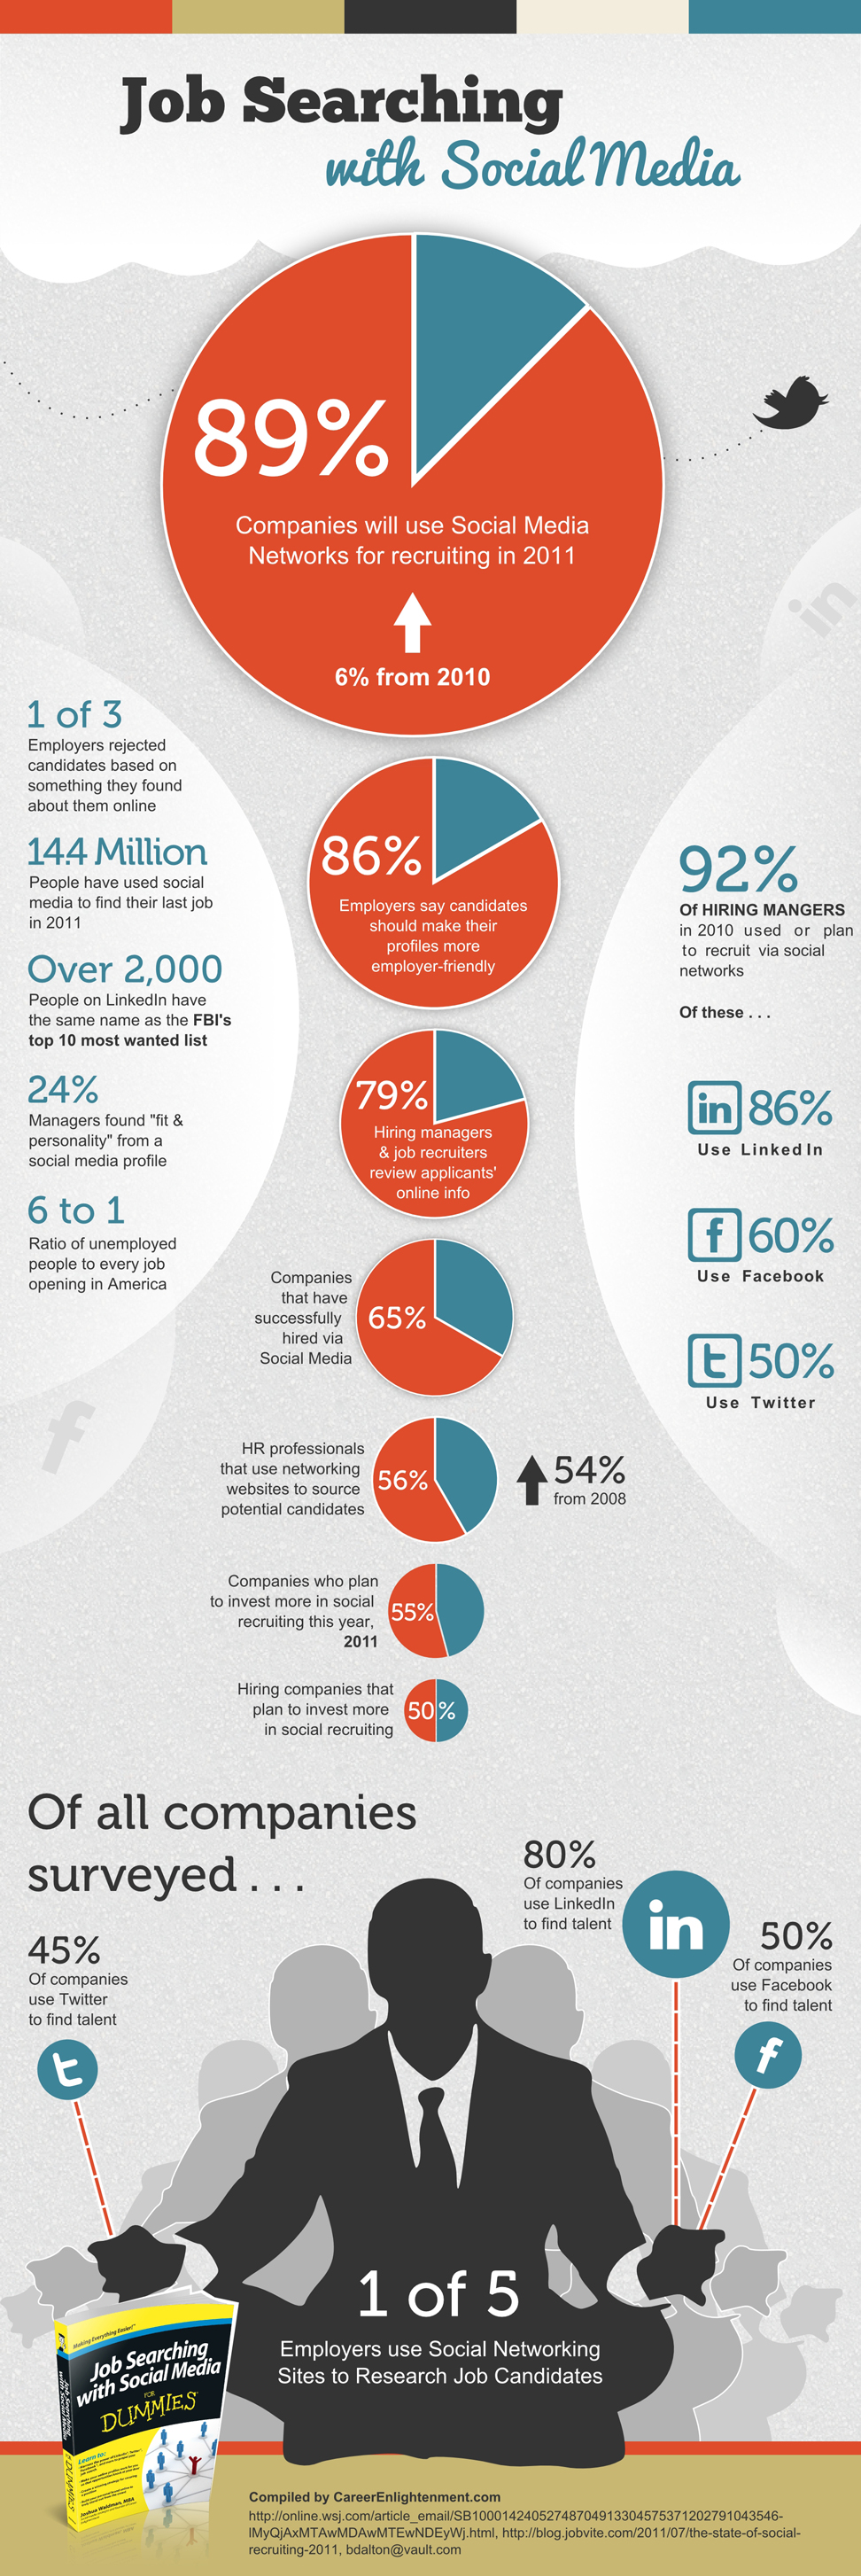 http://5.mshcdn.com/wp-content/uploads/2011/08/Job-Searching-with-Social-Media-Infographic.jpg